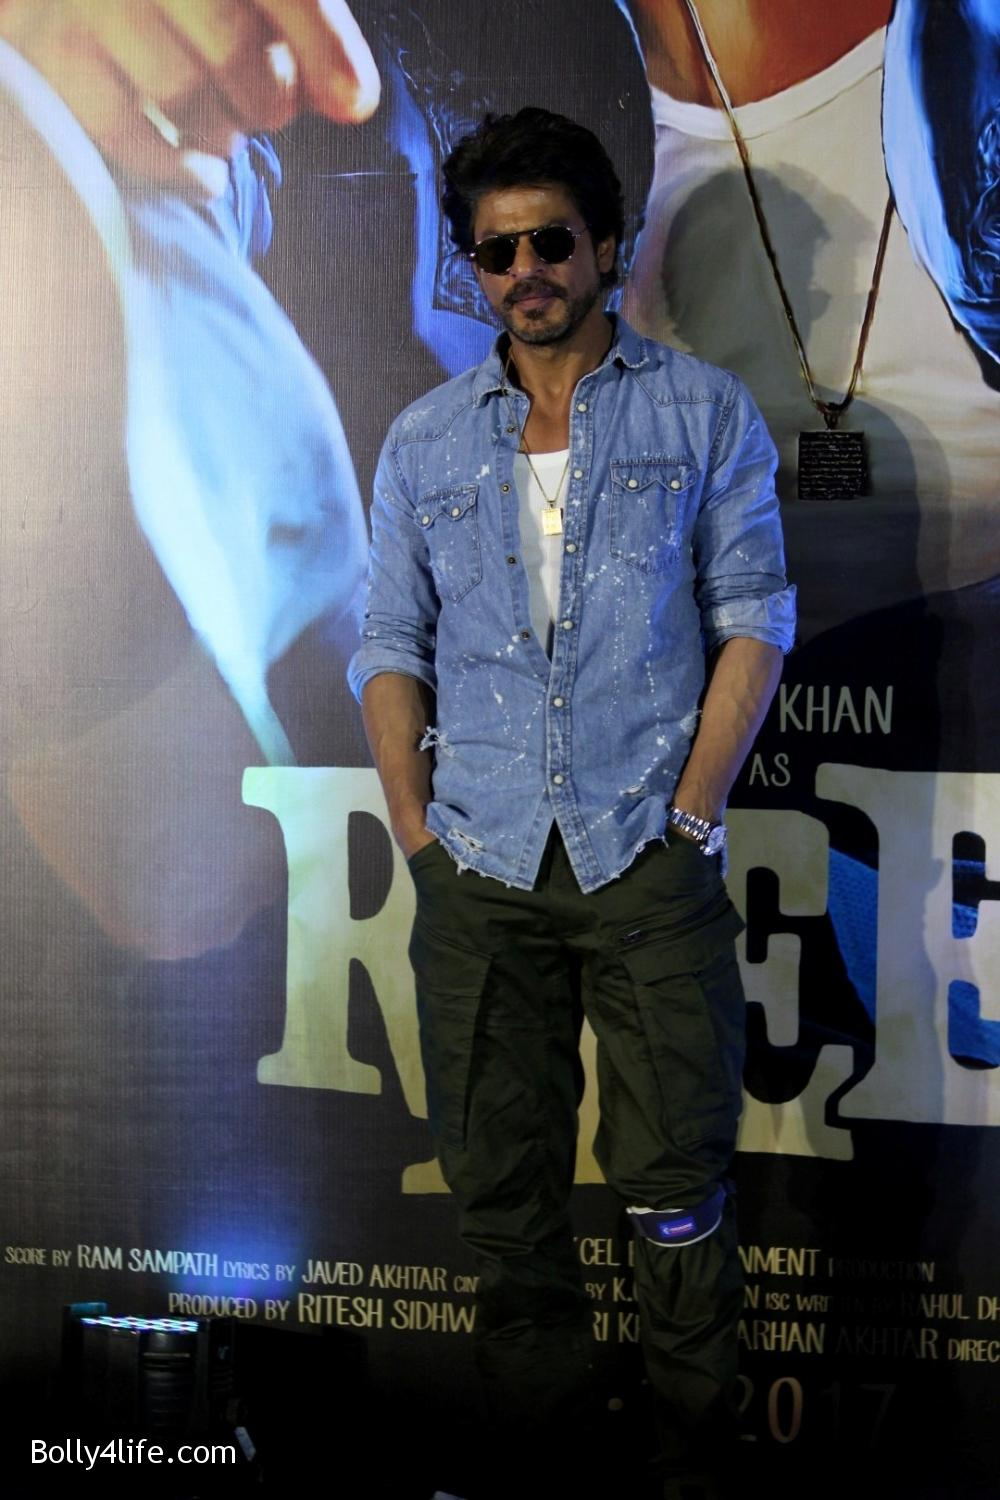 Trailer-launch-of-film-Raees-2.jpg